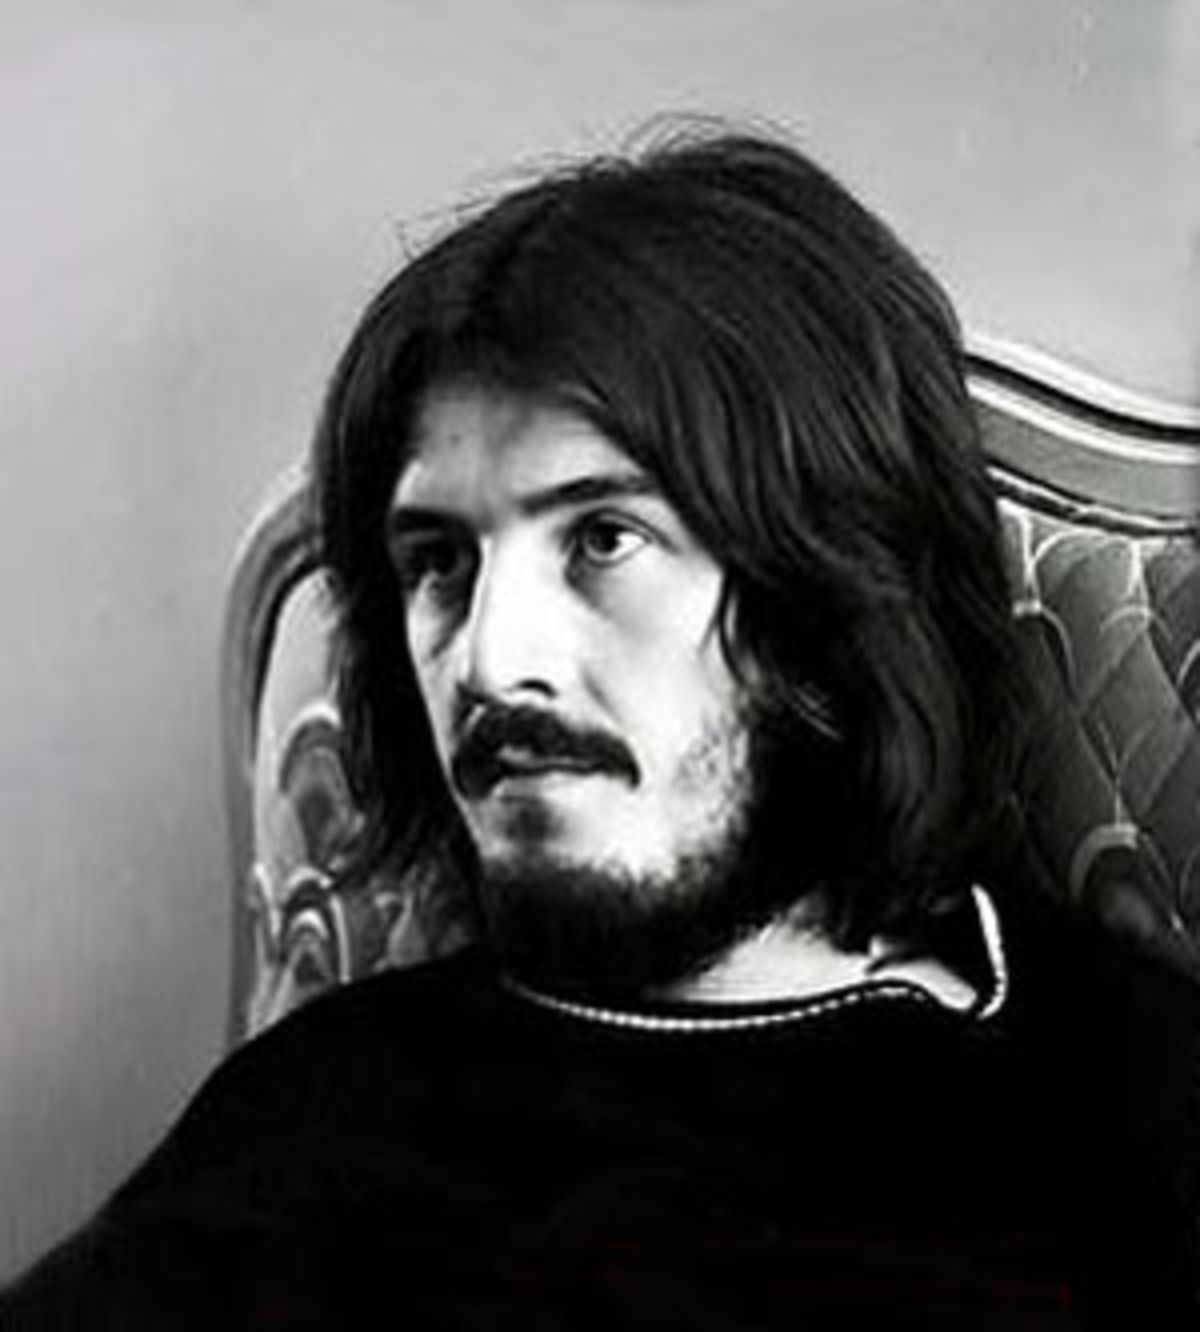 John Bonham, drummer of Led Zeppelin